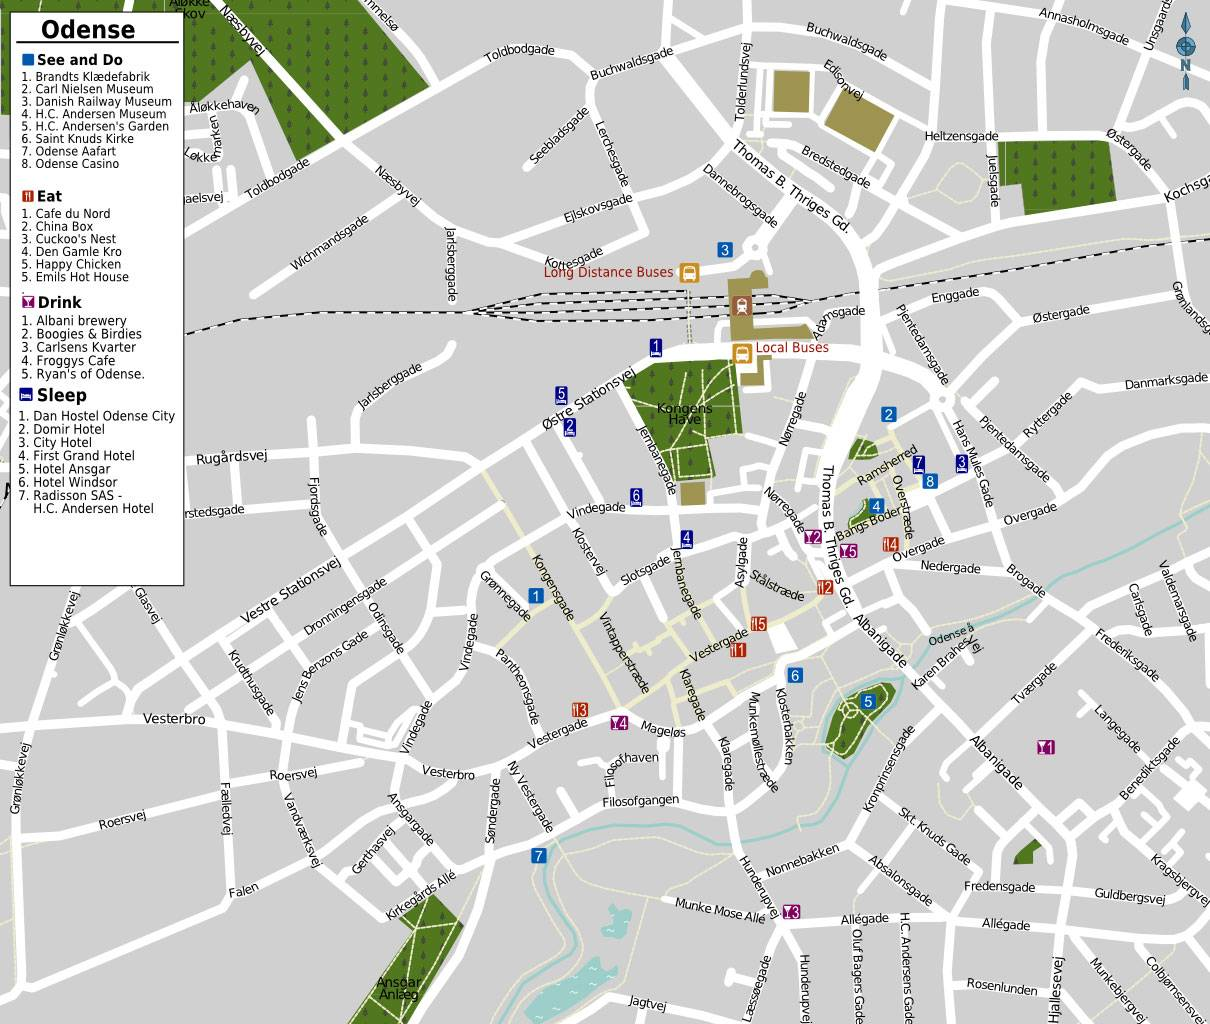 Large Odense Maps for Free Download | High-Resolution and Detailed ... ODENSE MAP